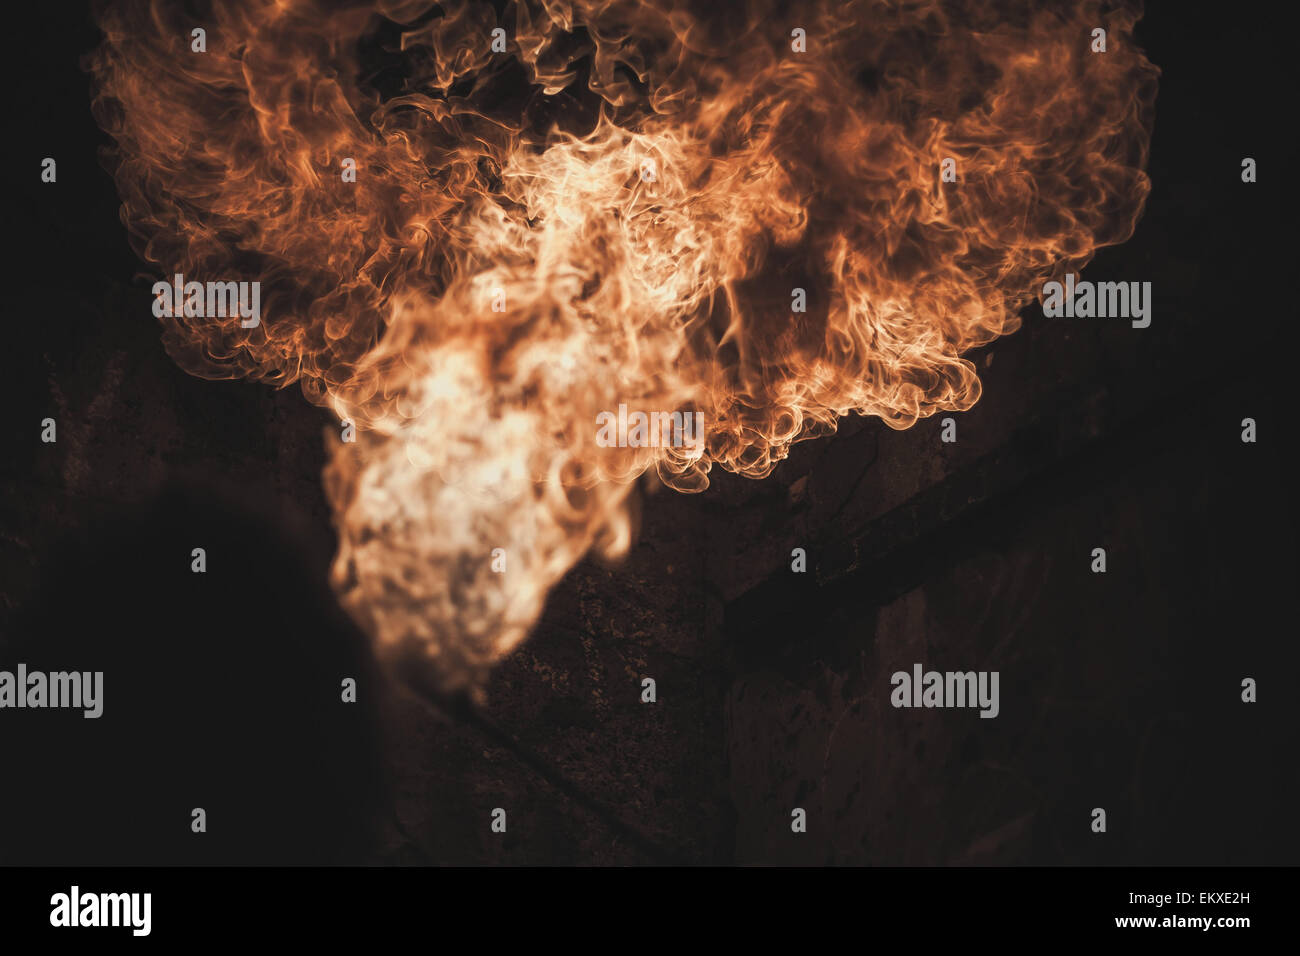 close up fire breathe in an industrial setting - Stock Image